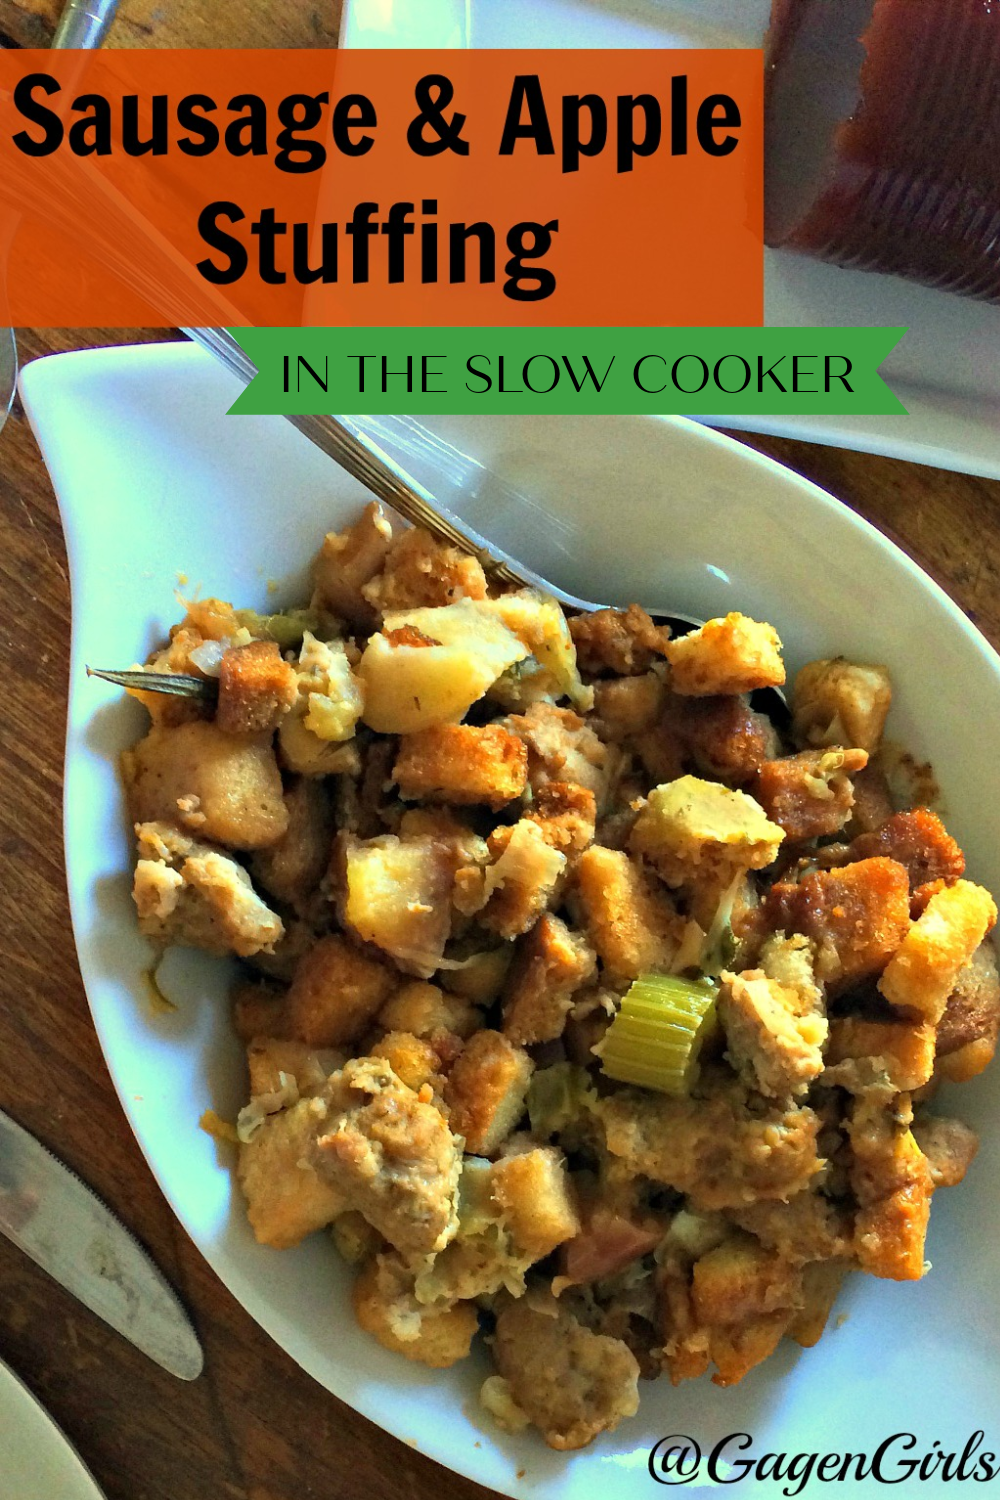 Sausage & Apple Stuffing in the Slow Cooker